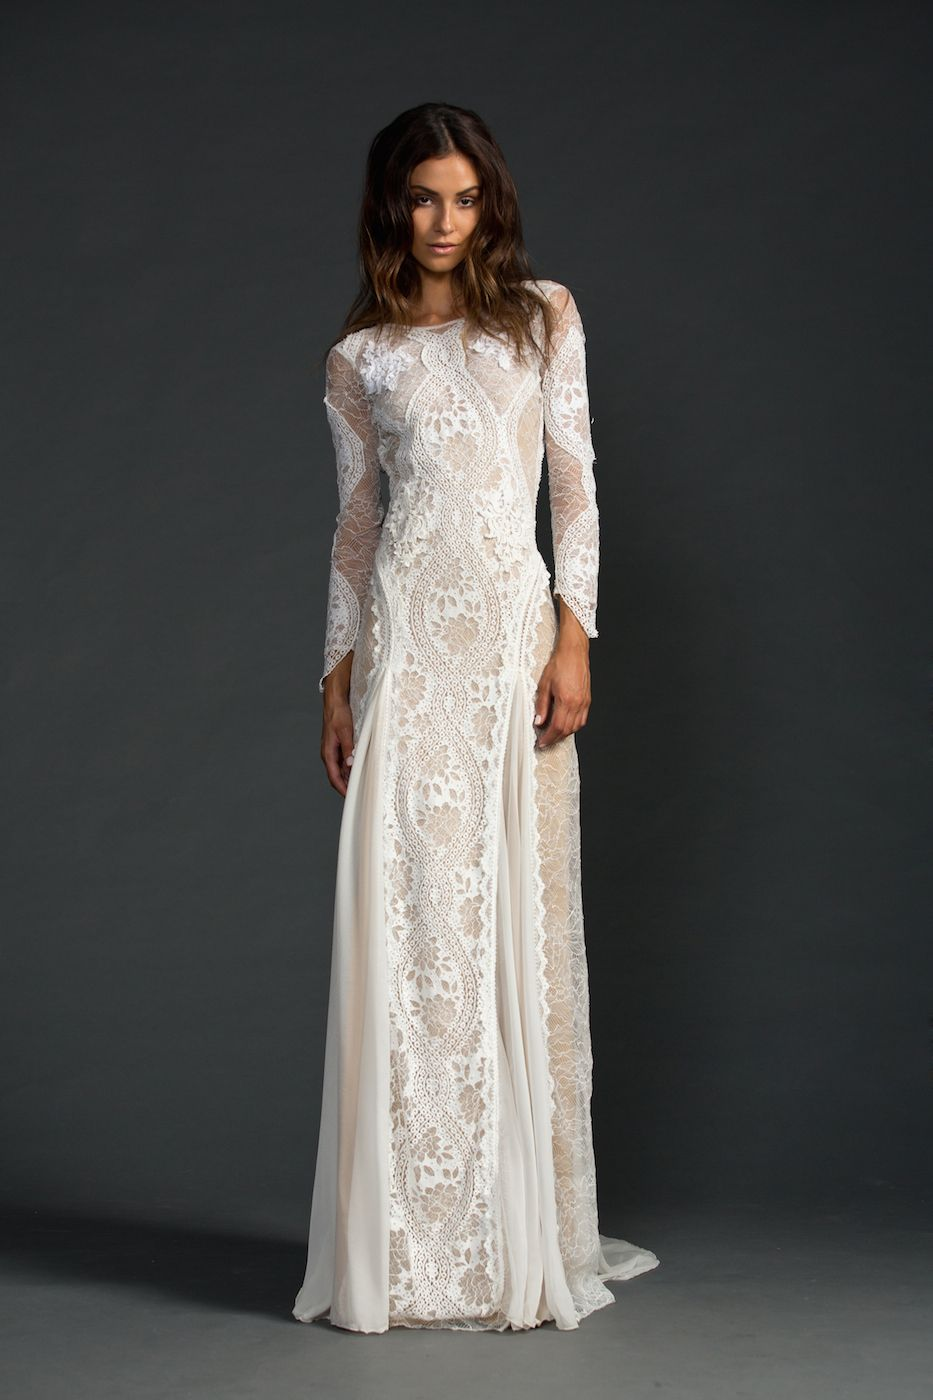 Vestido de noiva estilo boho chic dresses pinterest wedding